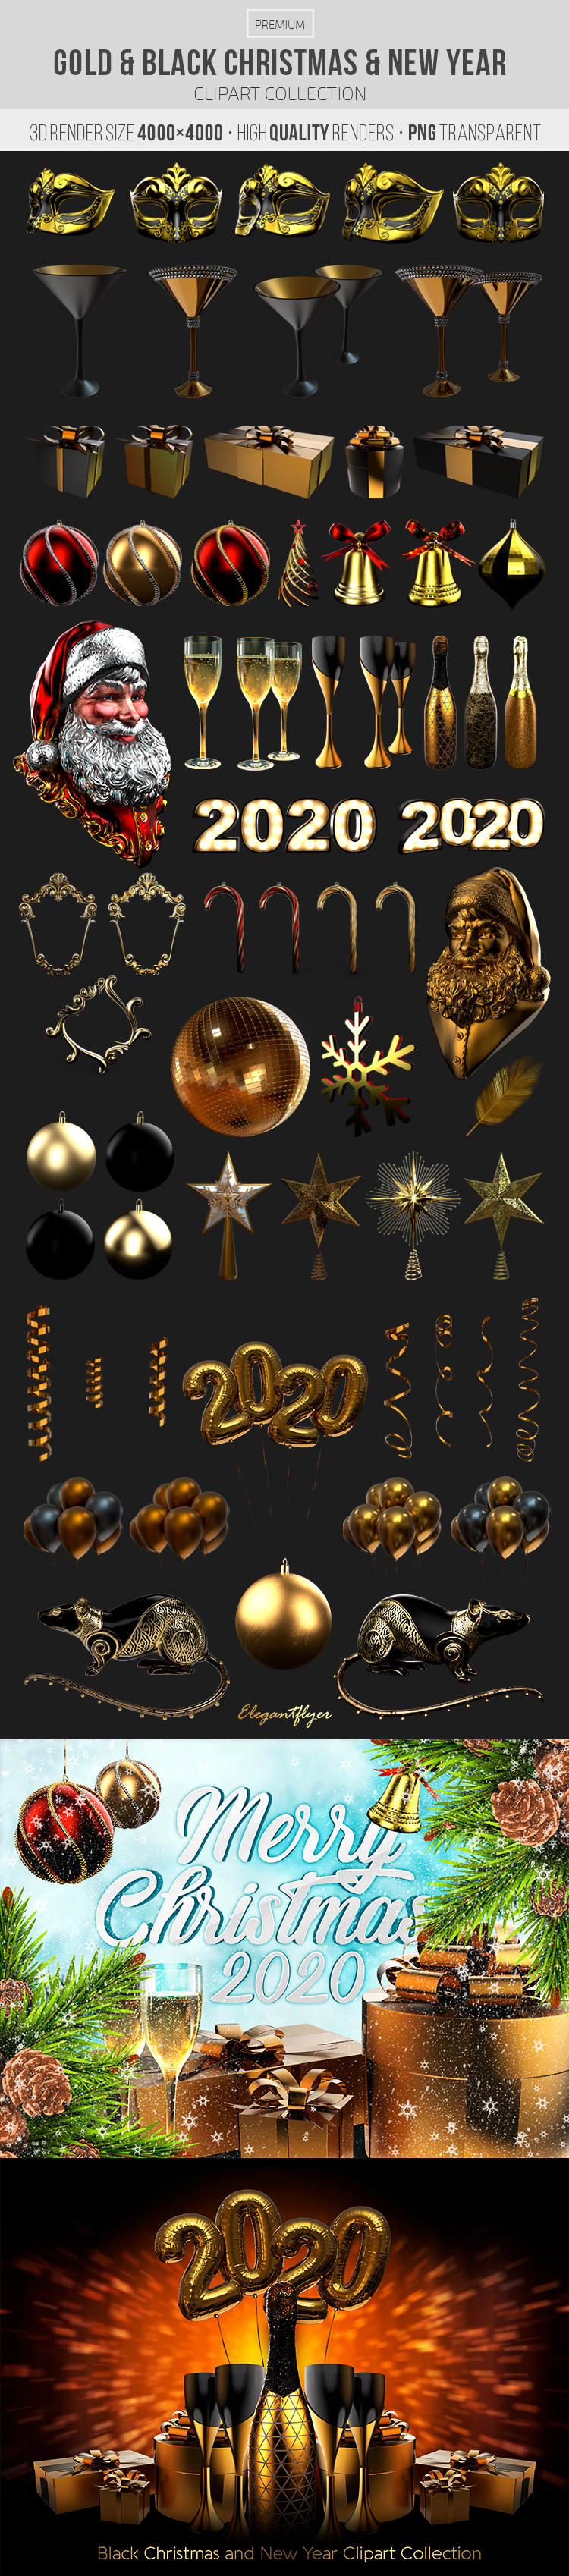 Gold and Black Christmas and New Year – Premium 3d Render Templates